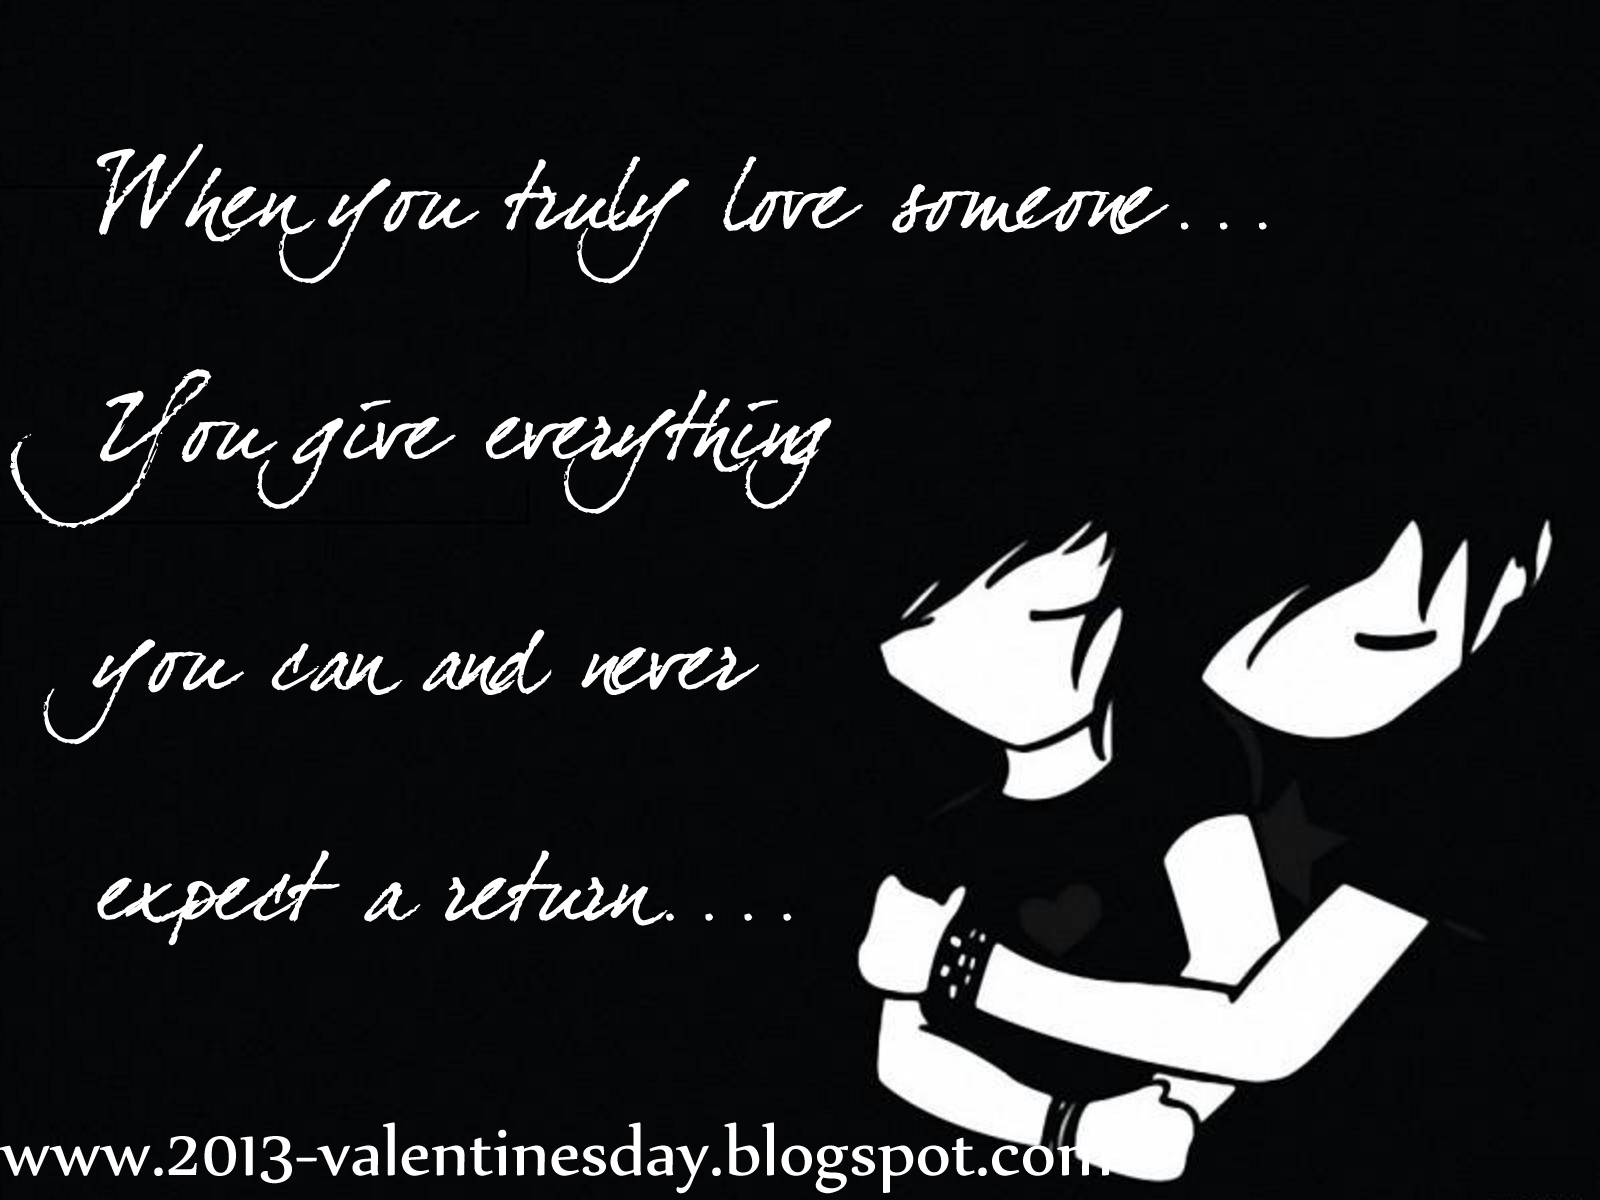 Quotes on Love I love you Quotes for Valentines day 2014